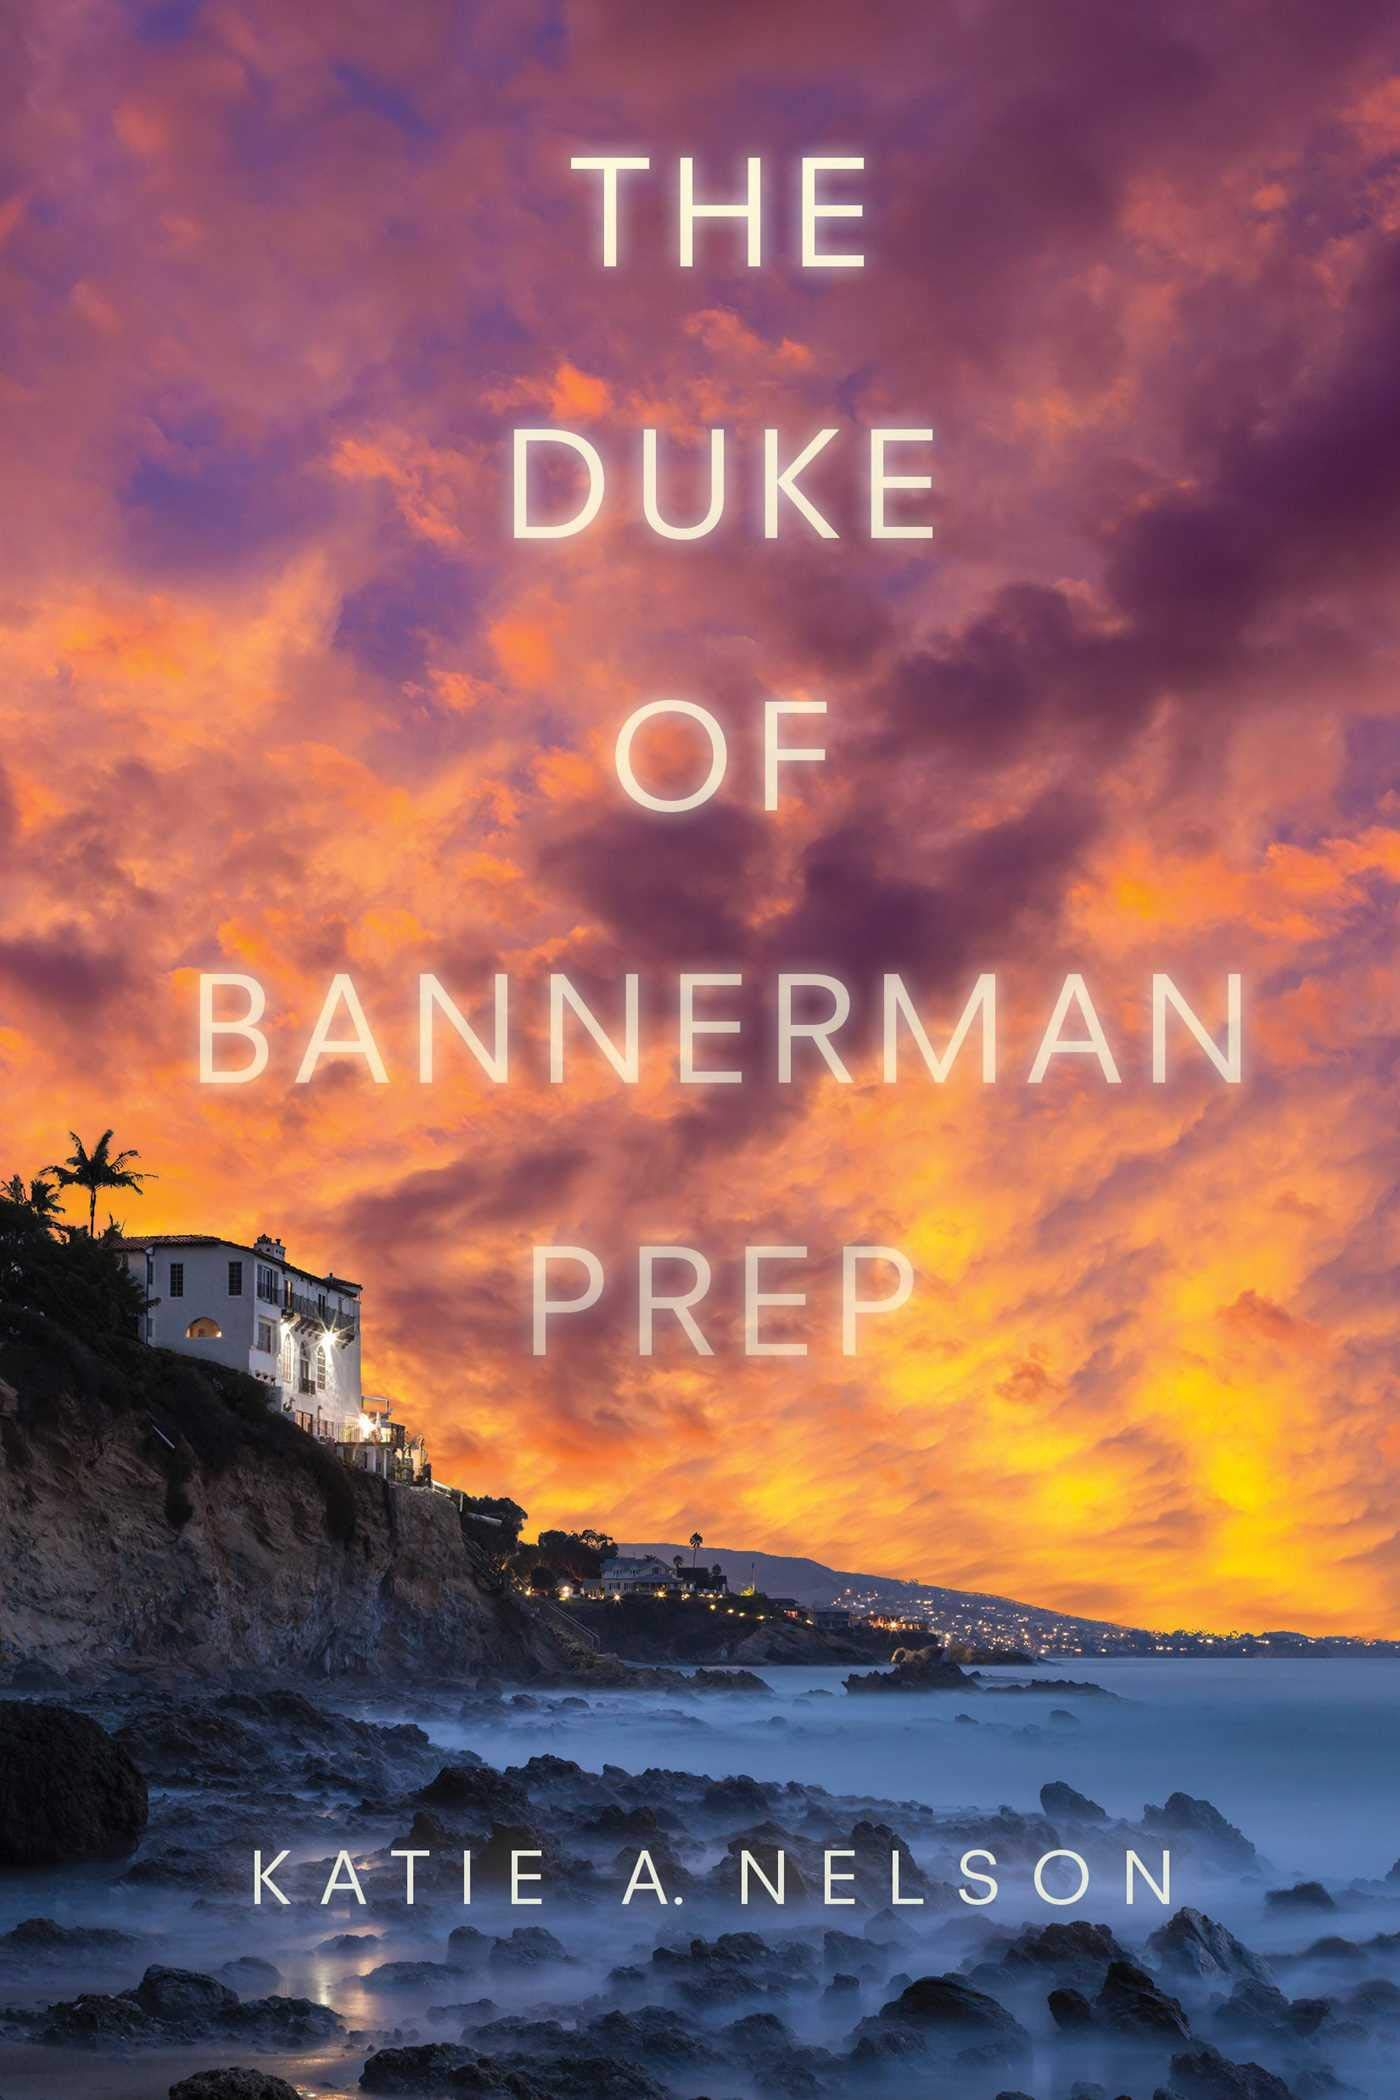 383605152 Amazon.com: The Duke of Bannerman Prep (9781510710405): Katie A ...